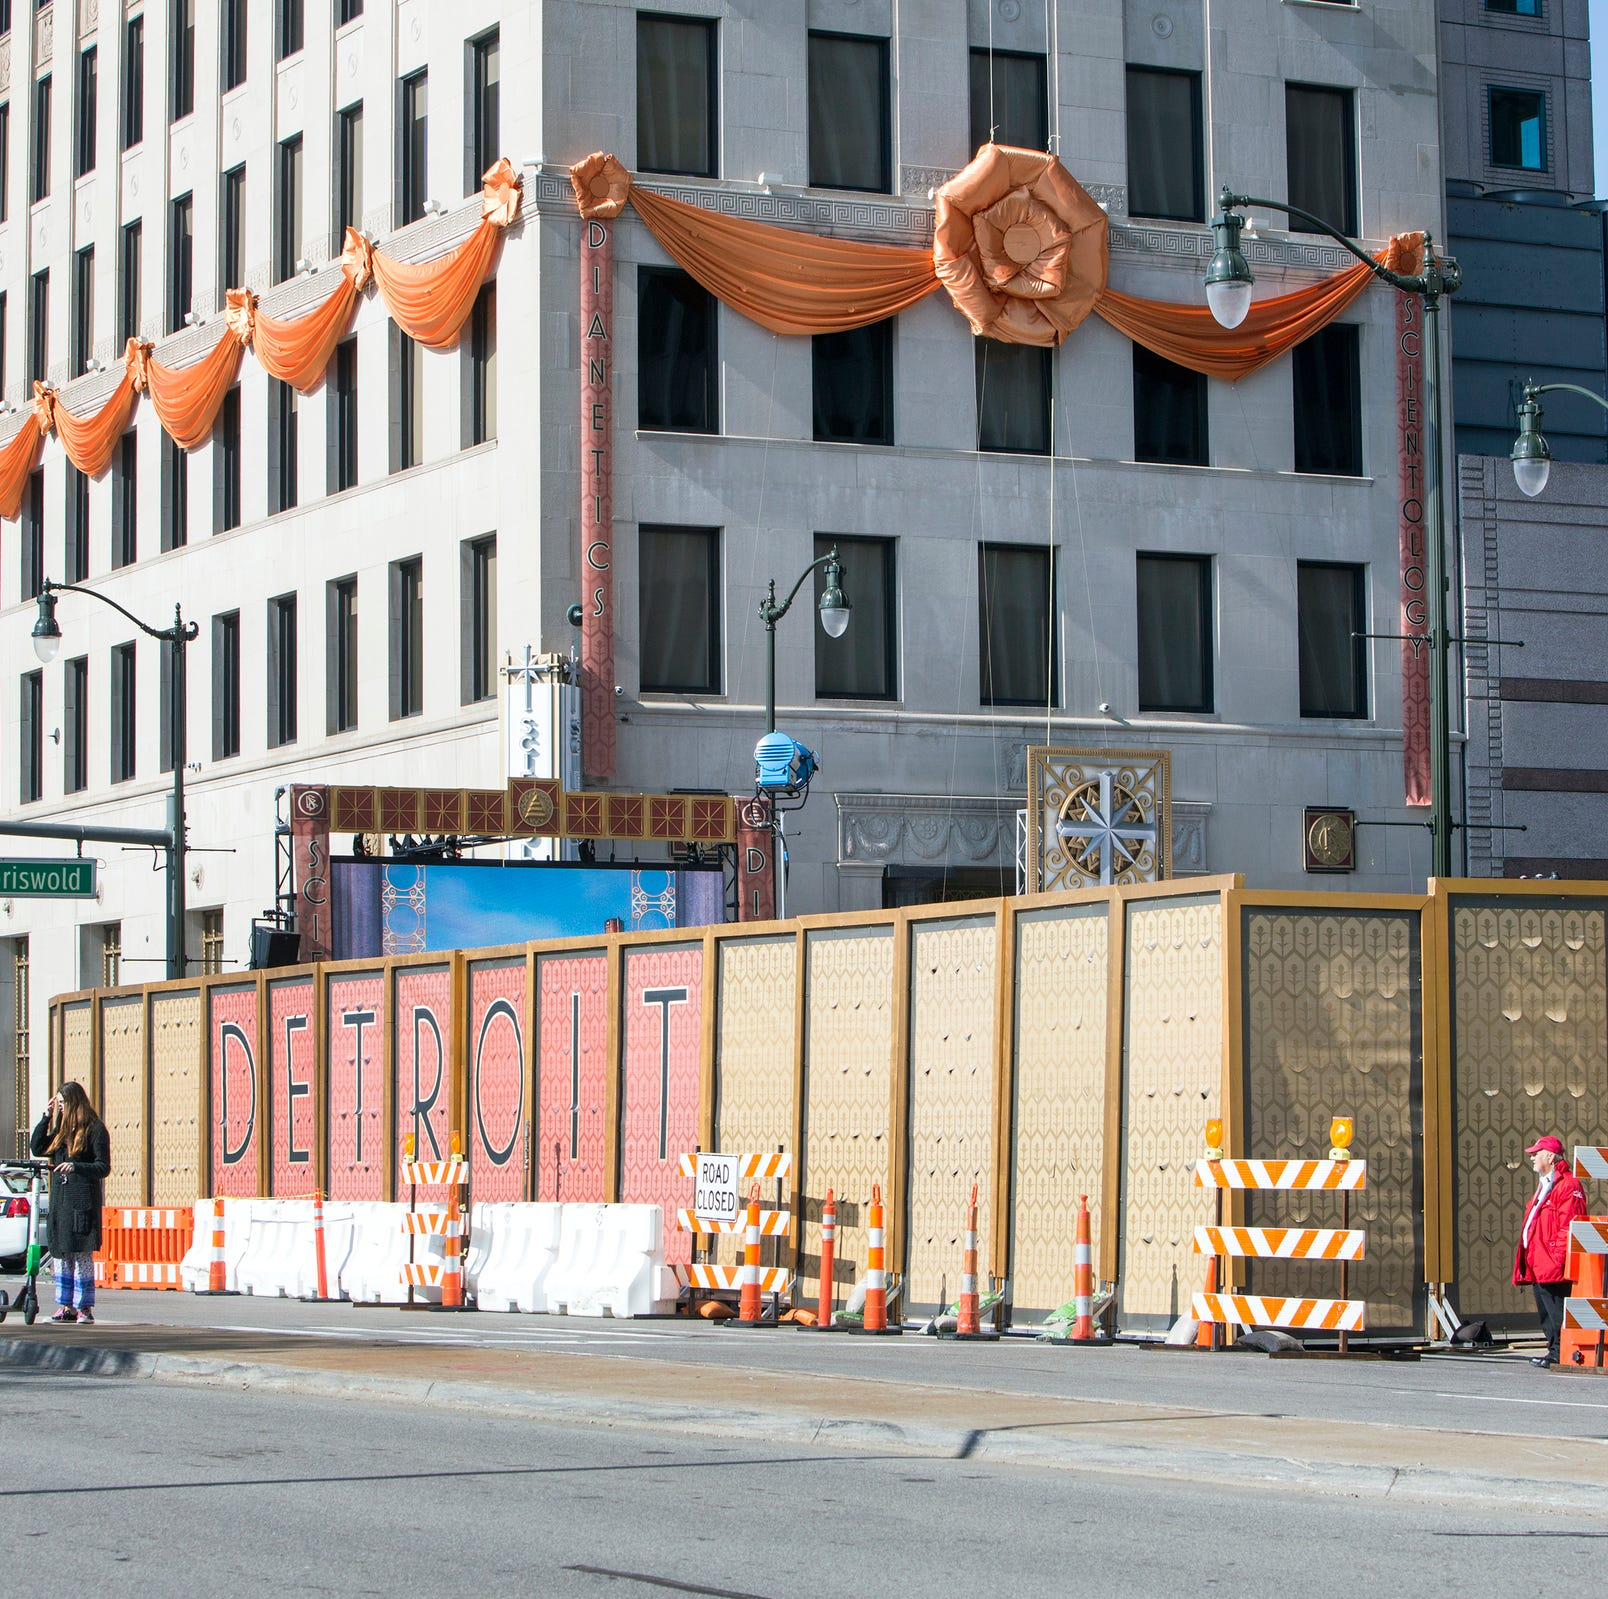 Scientology headquarters in Detroit opens in secretive ceremony